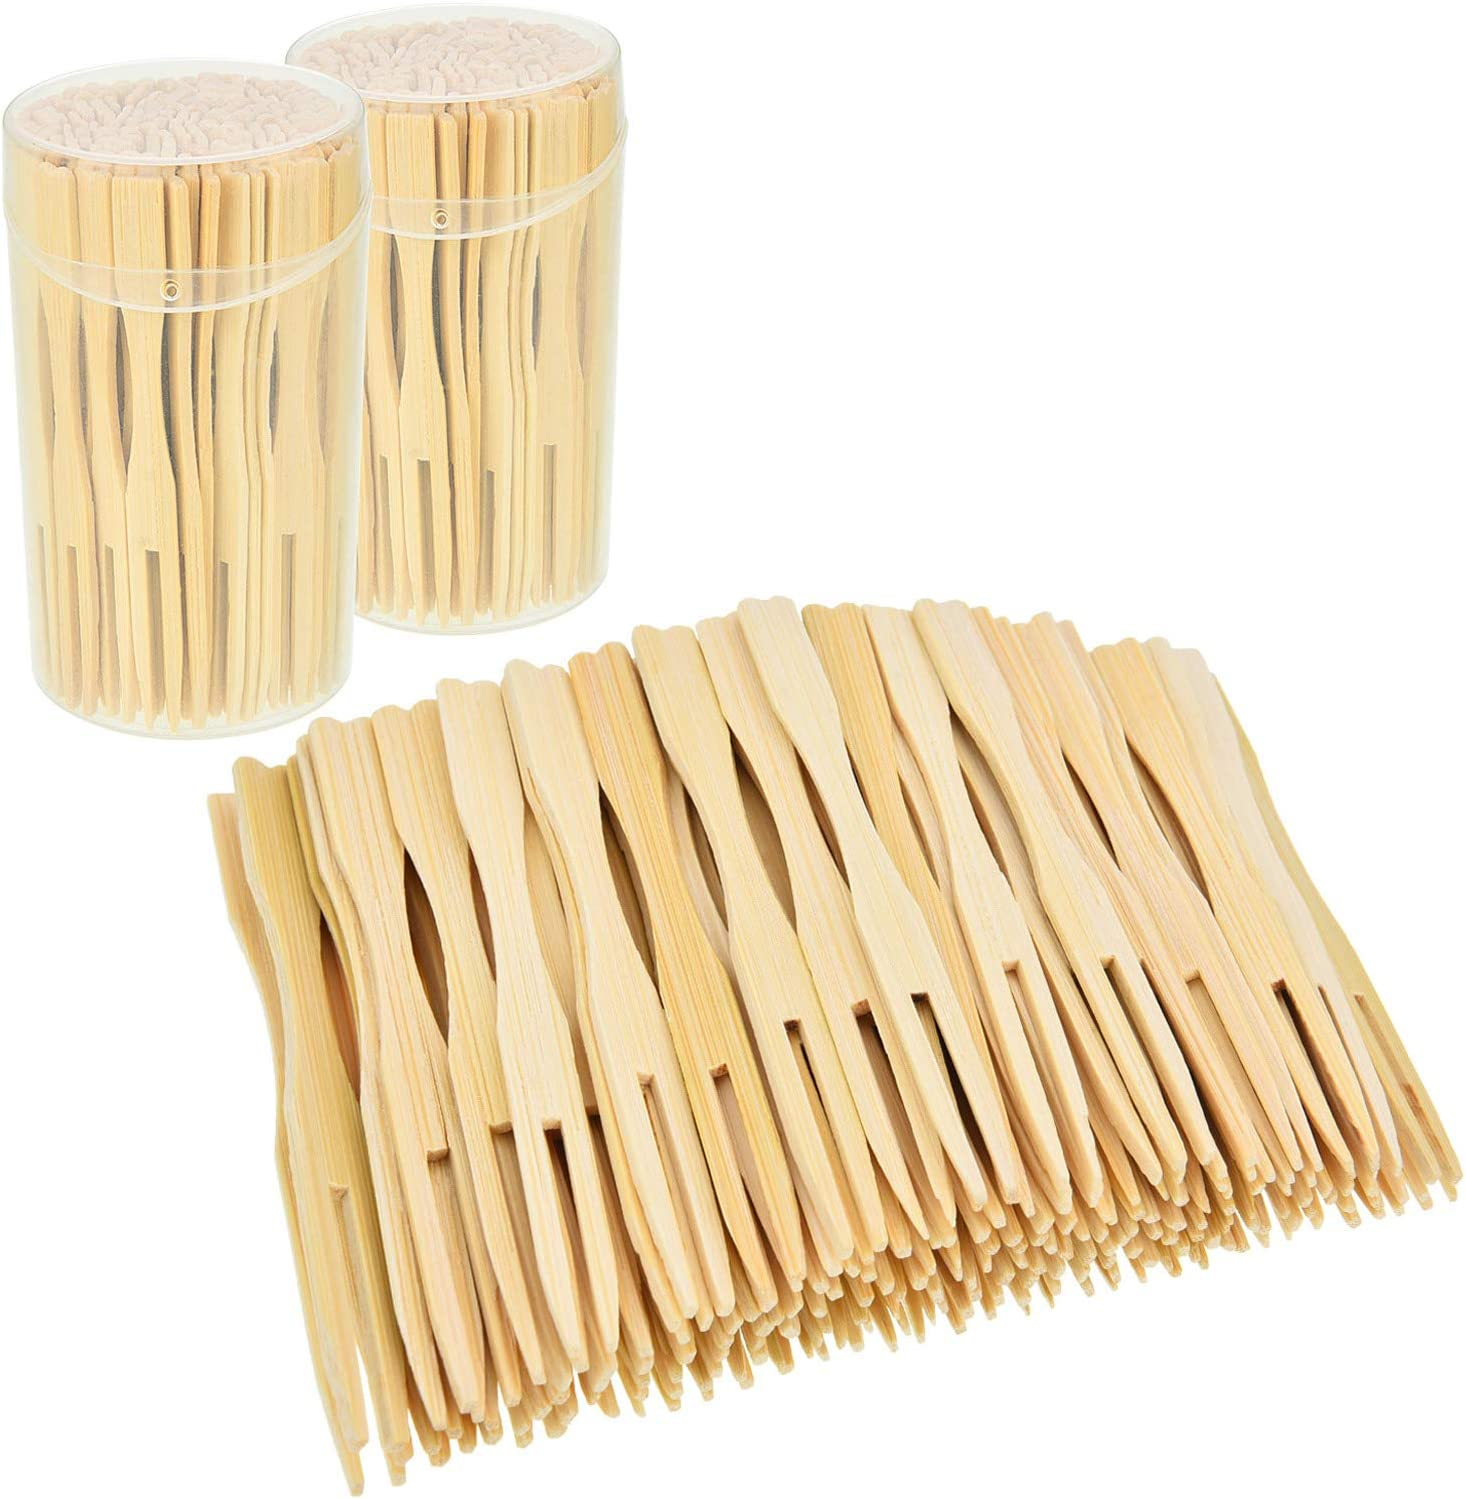 Jovitec 2 Pack 220 Pieces Total Bamboo Forks Mini Food Picks Double Prong Cocktail Forks Blunt-end Forks for Banquet Catering Party, 3.5 Inches